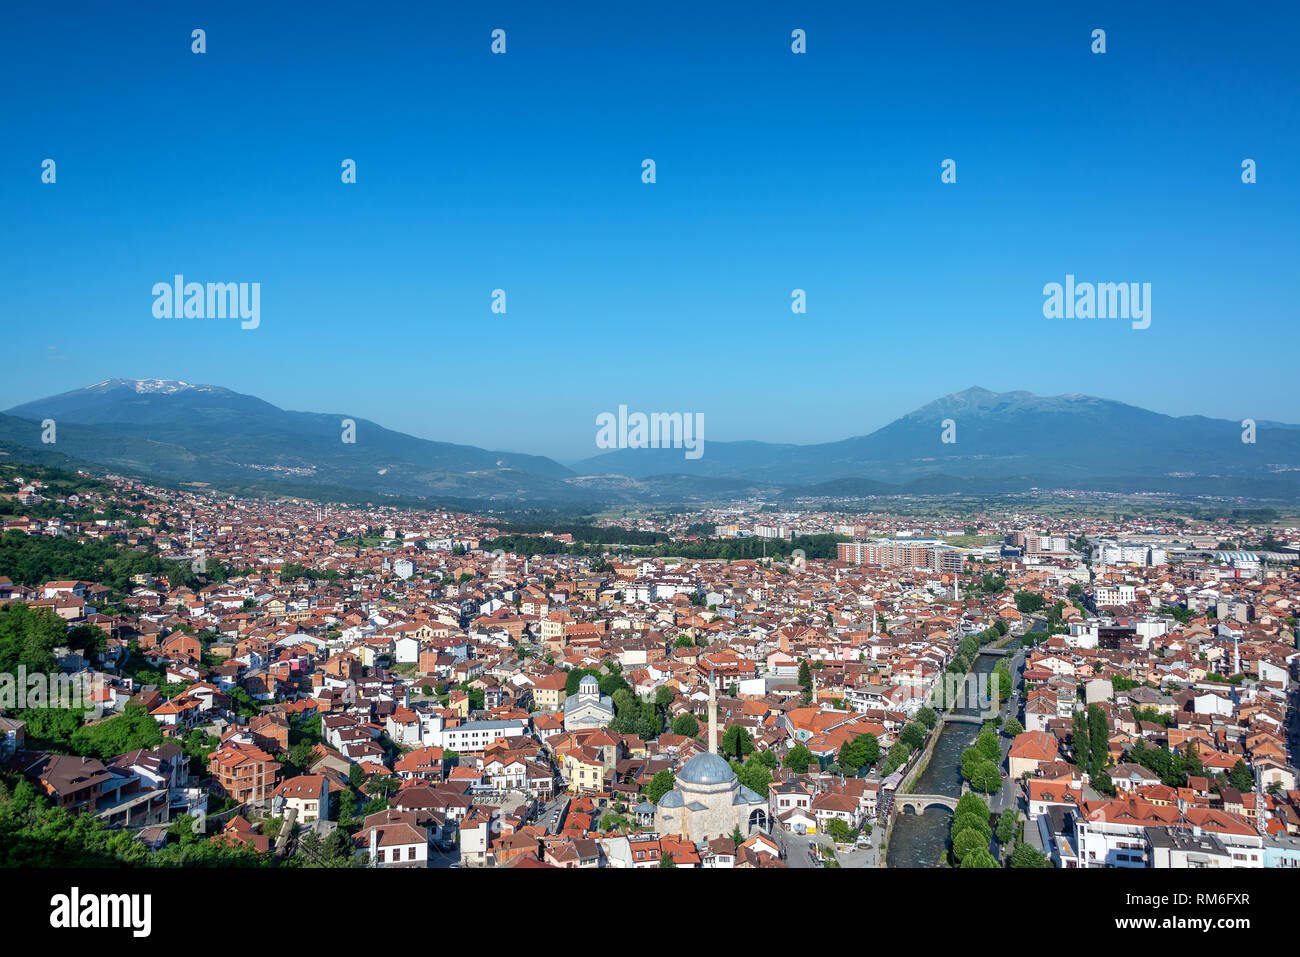 Beautiful cityscape view of Prizren, Kosovo with the Albanian Alps rising  in the background -